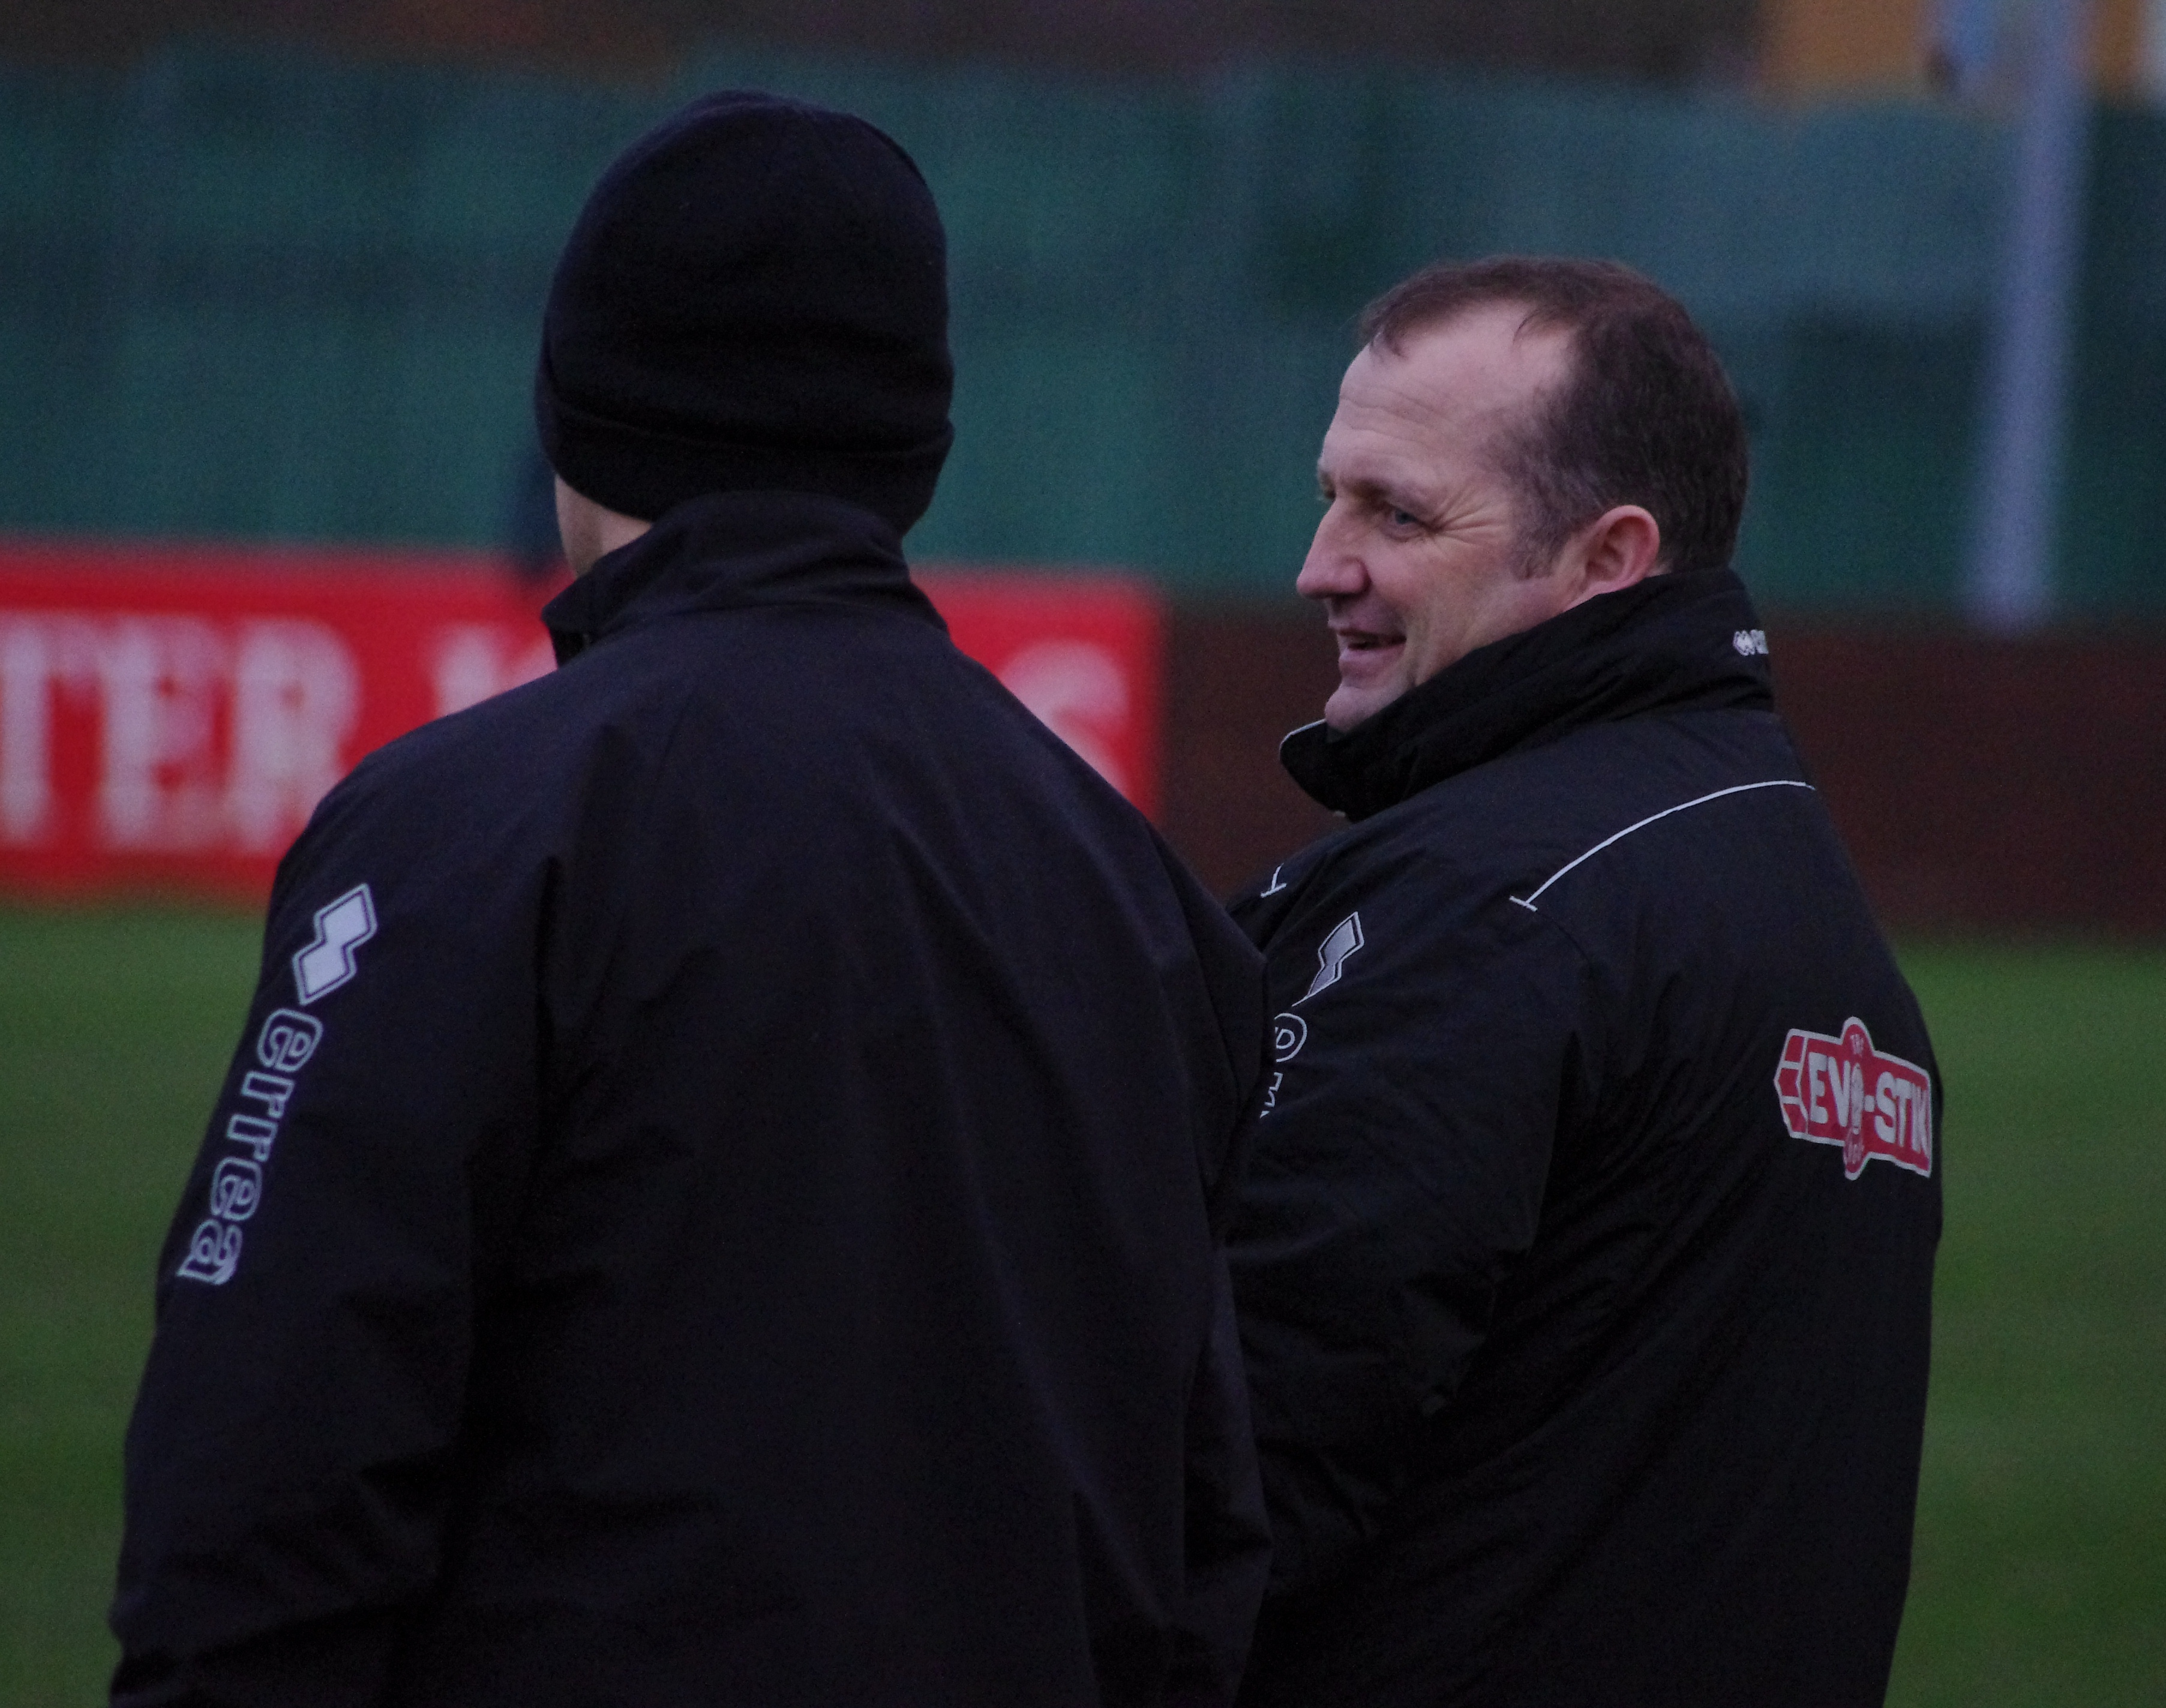 Billy Miller chats to his assistant Lee Ashforth during the 1-0 defeat to Ossett Town